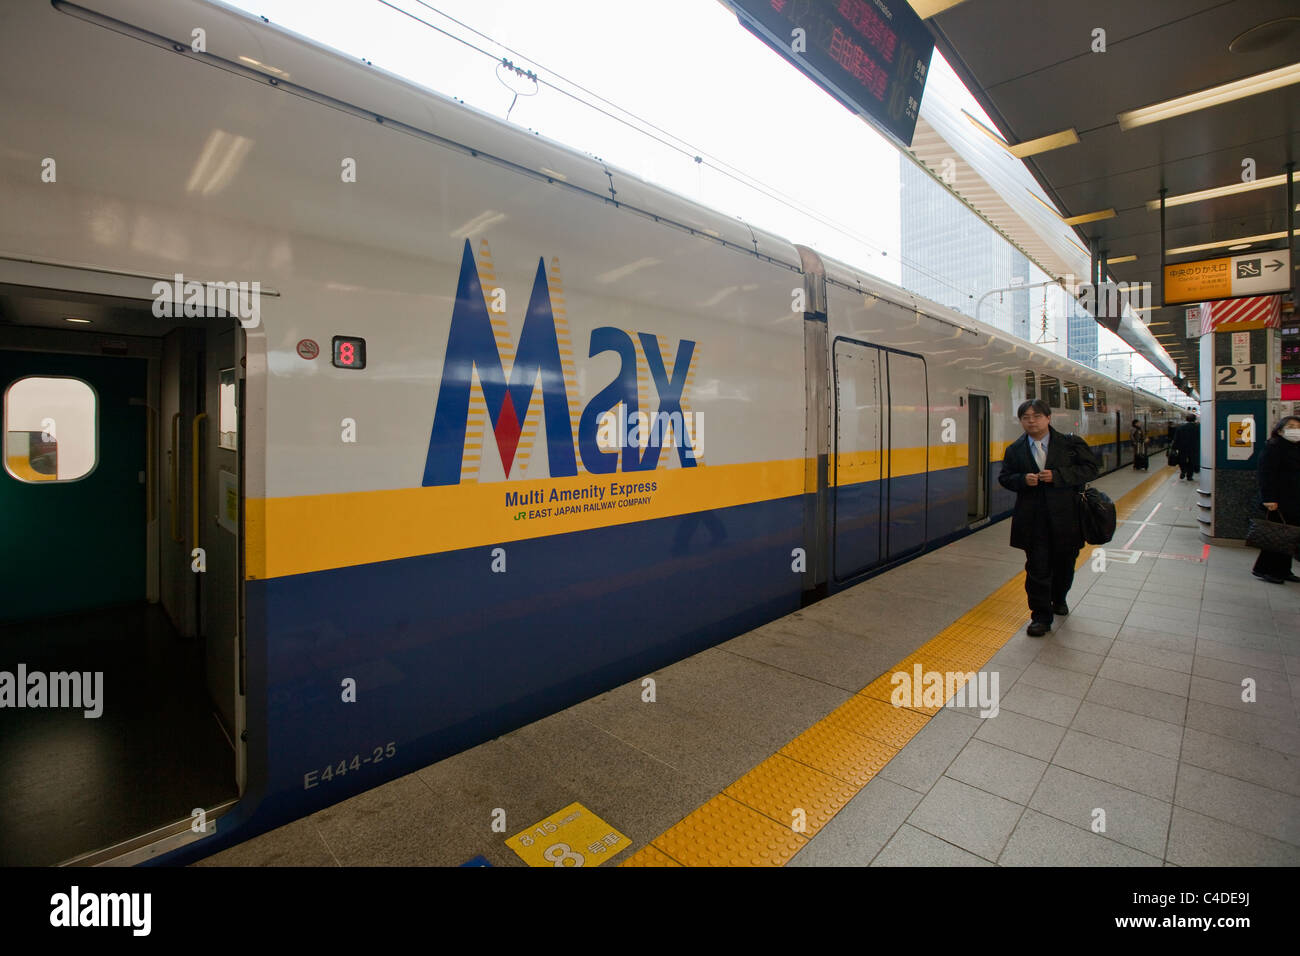 MAX, Multi Amenity Express, shinkansen (bullet train) stopped briefly at Tokyo station, Japan, Far East, Asia. Stock Photo